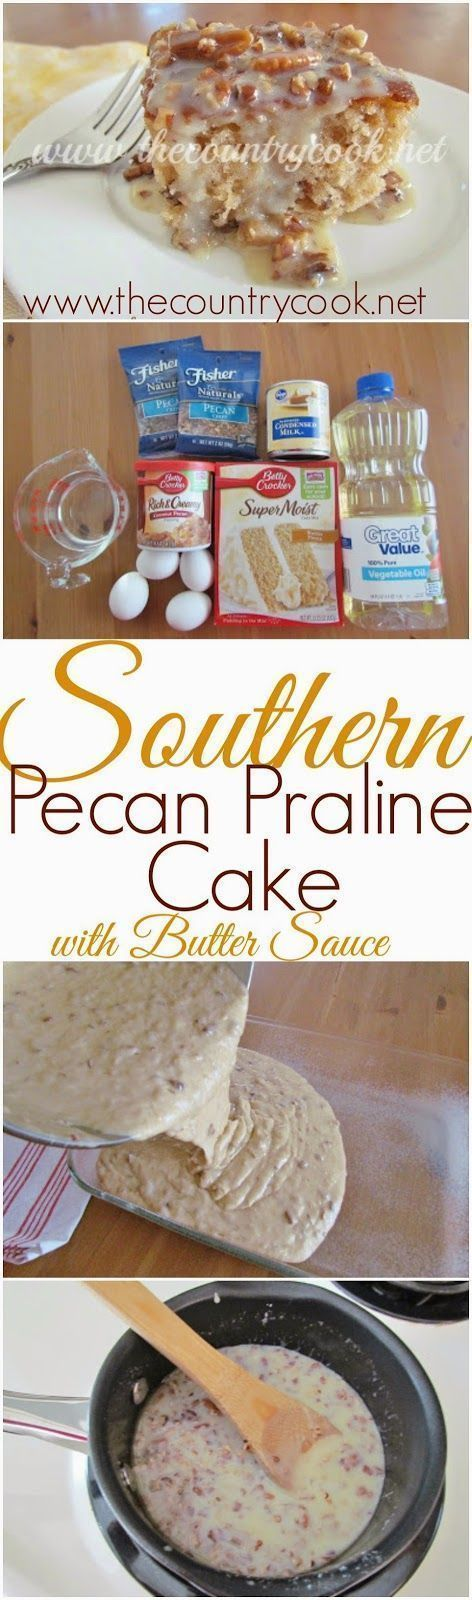 The Country Cook: Southern Pecan Praline Cake with Butter Sauce. #dessert #pecan #cake #recipes